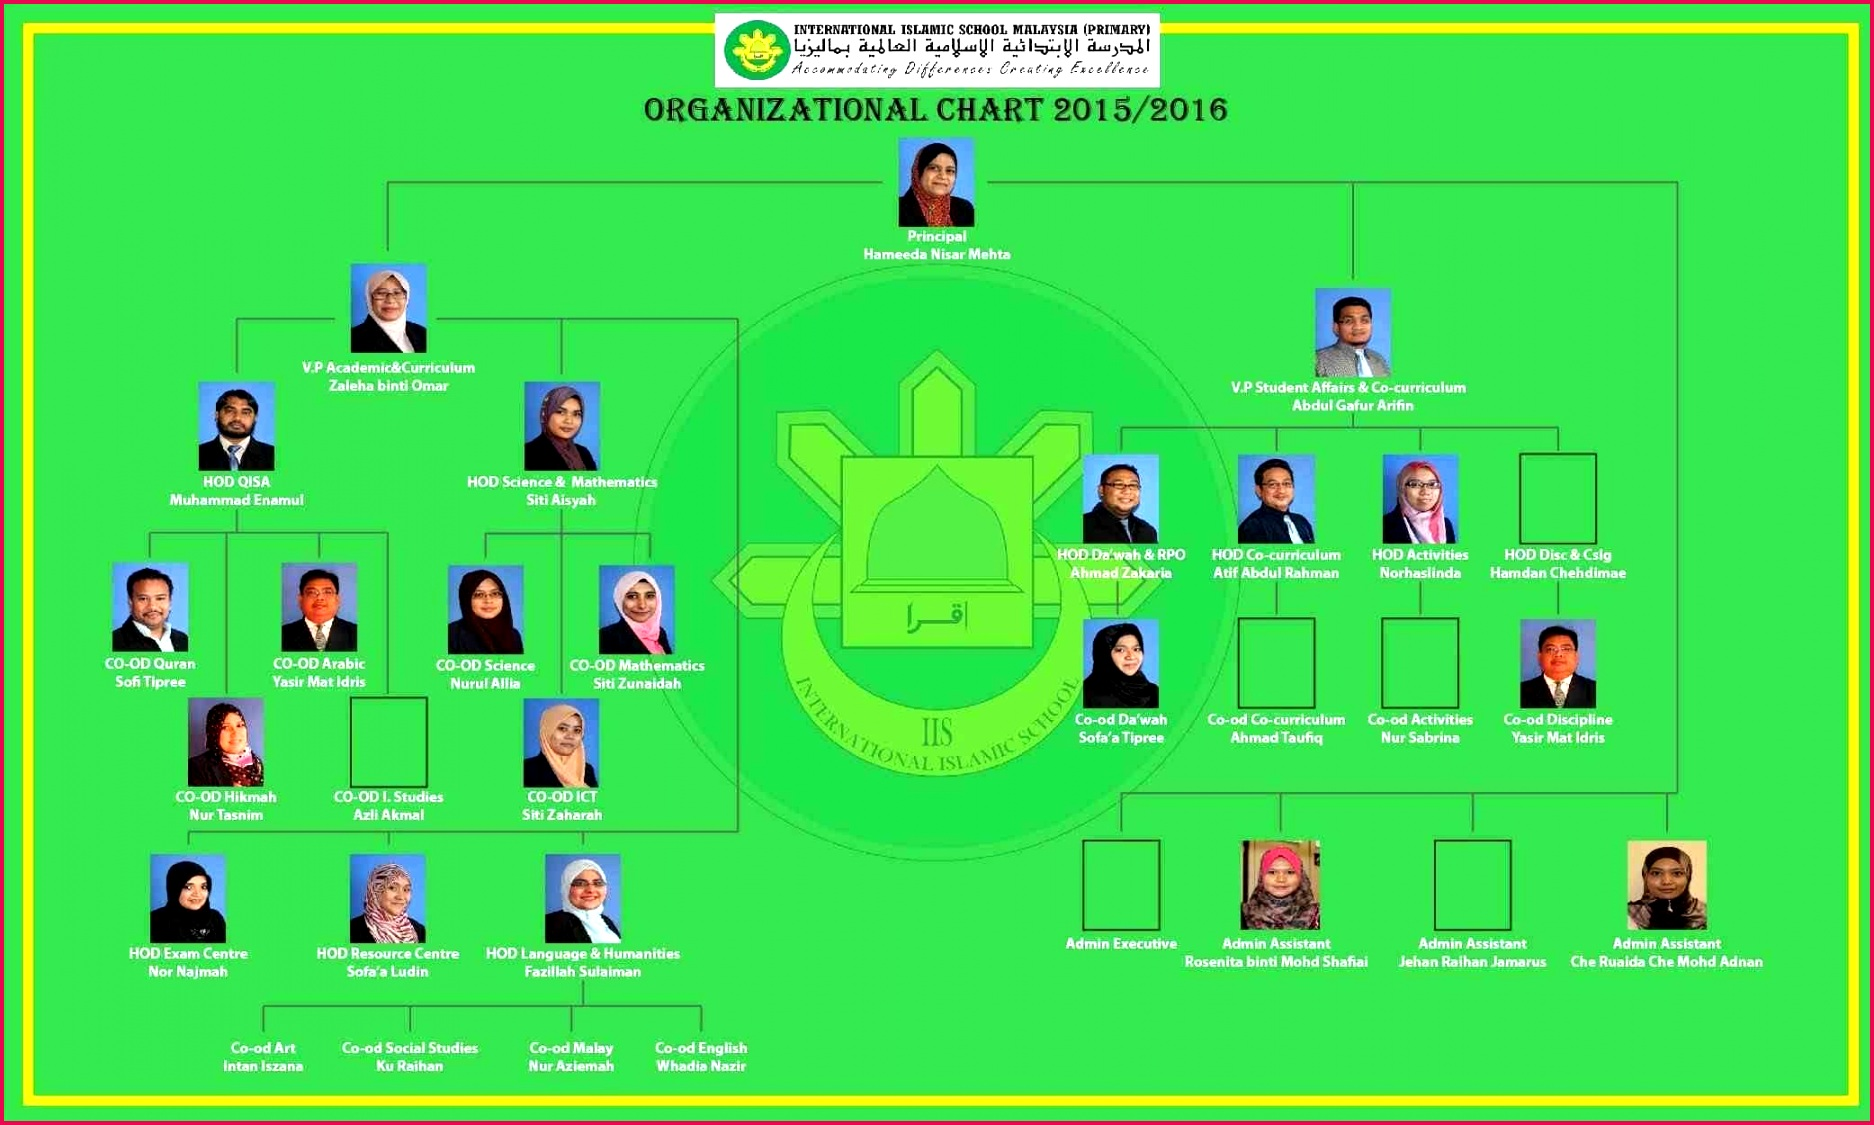 powerpoint background green free org chart creator new powerpoint certificate templates free beautiful of free org chart creator